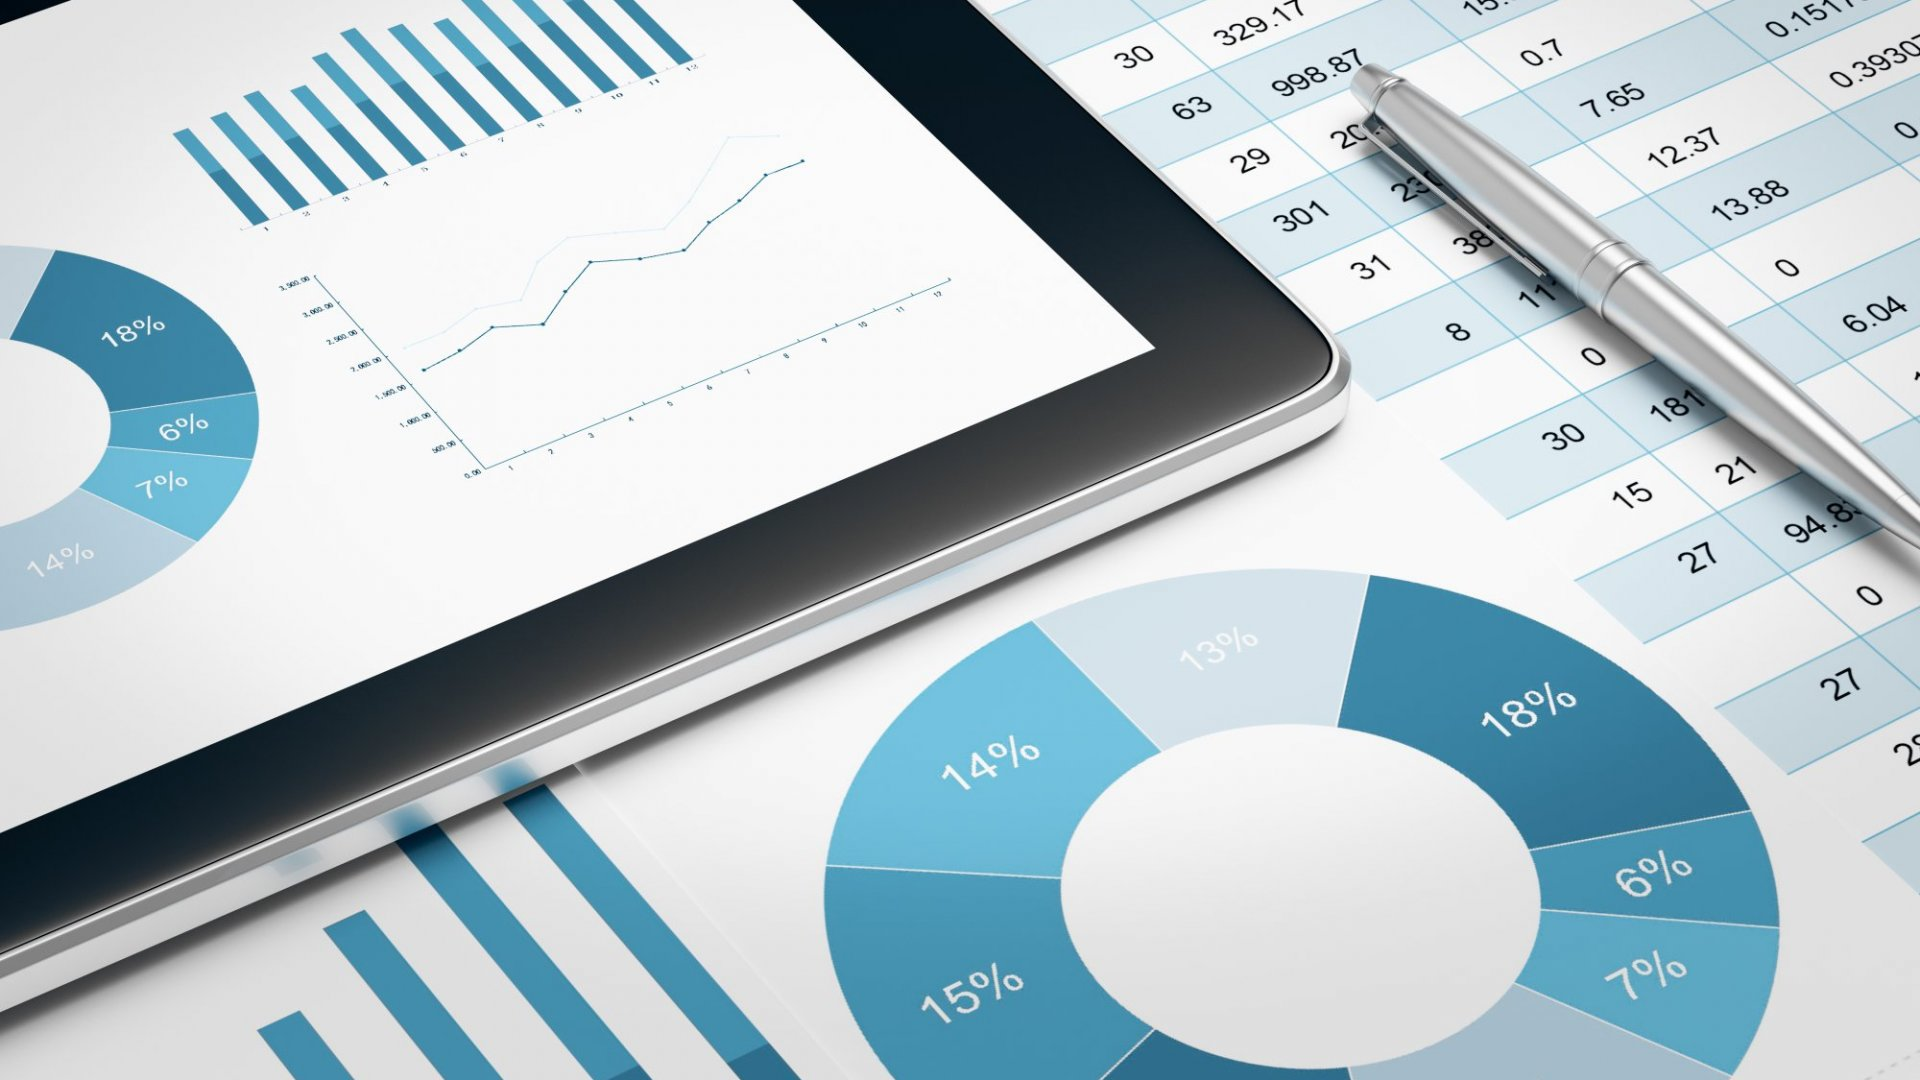 The 5 Characteristics of an Effective Business Metric